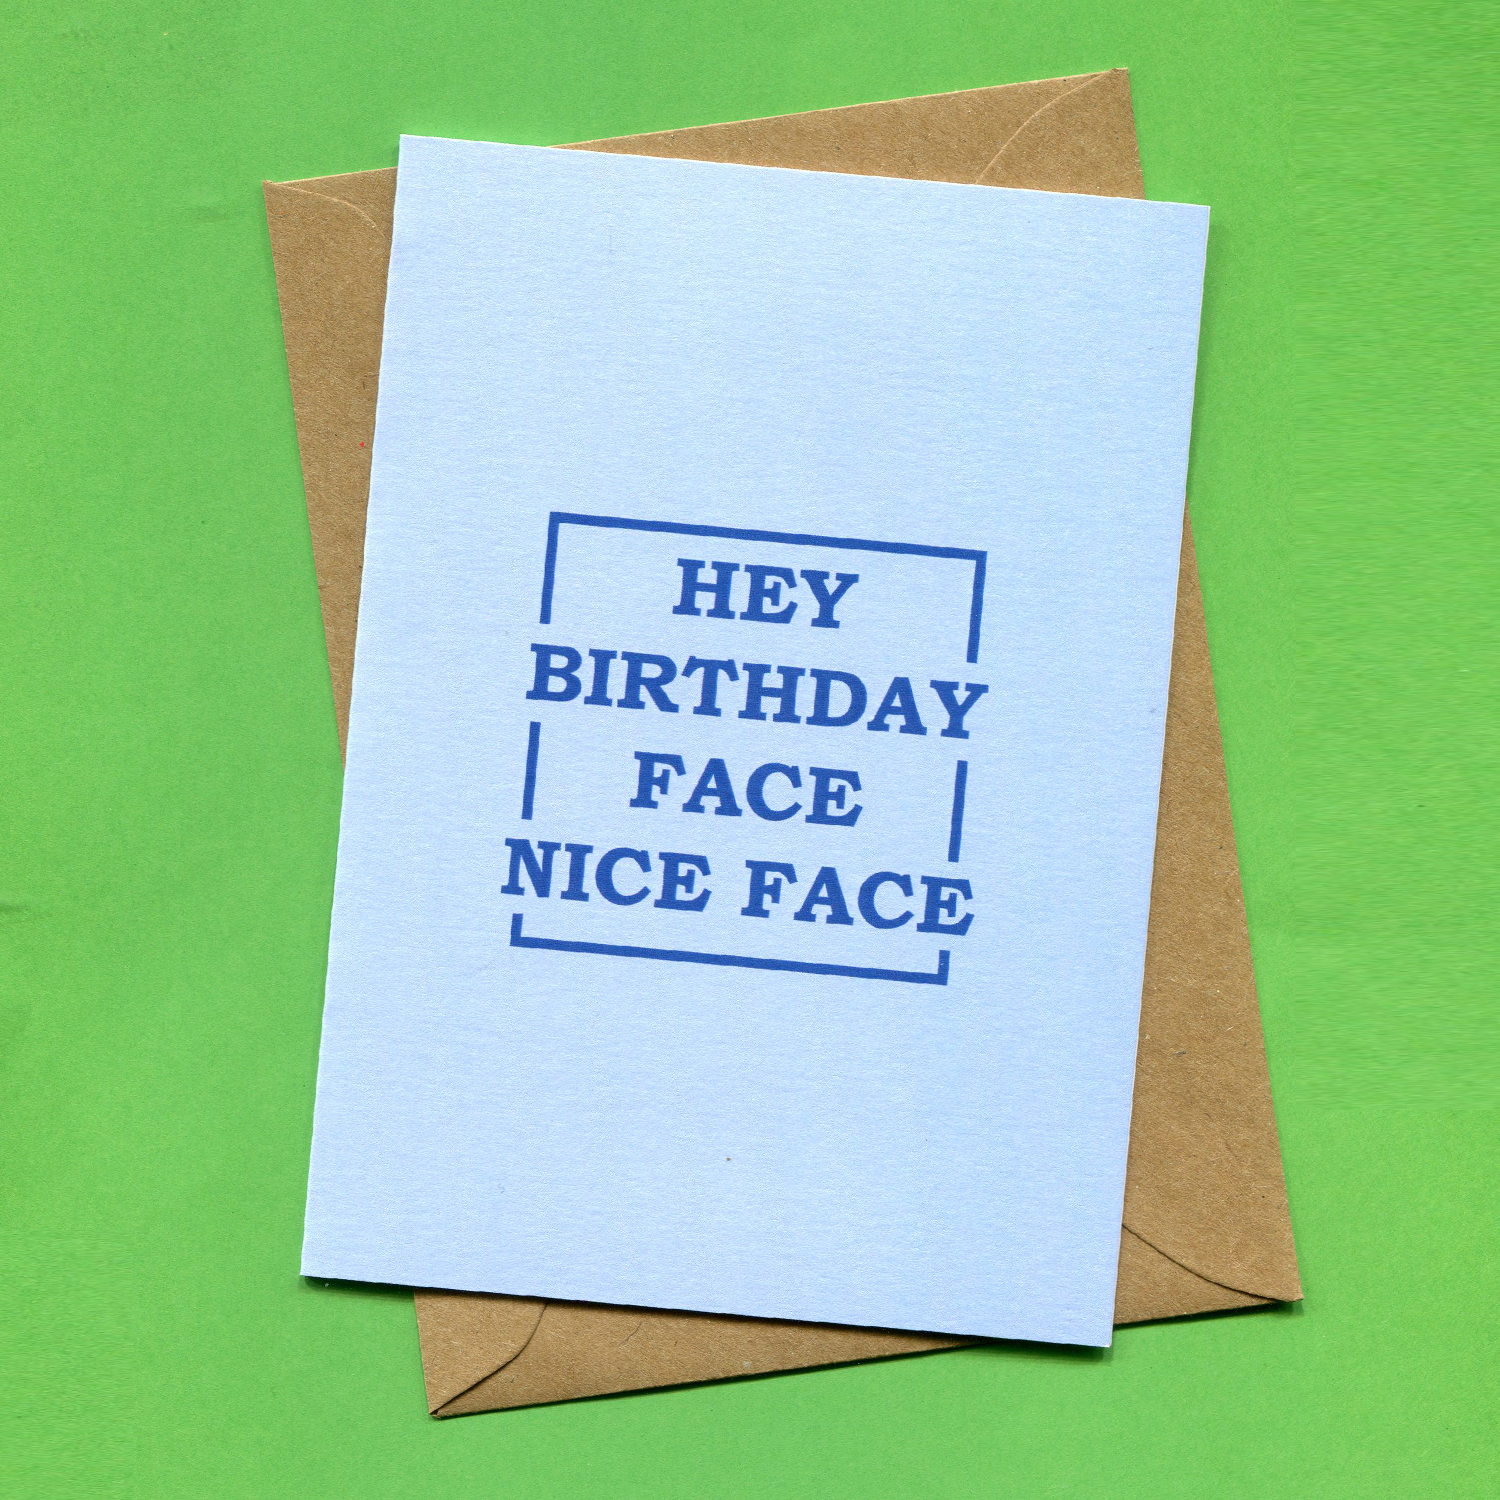 Catalogue_Things by Bean Hey Birthday Face Nice Face Greeting Card New.jpg